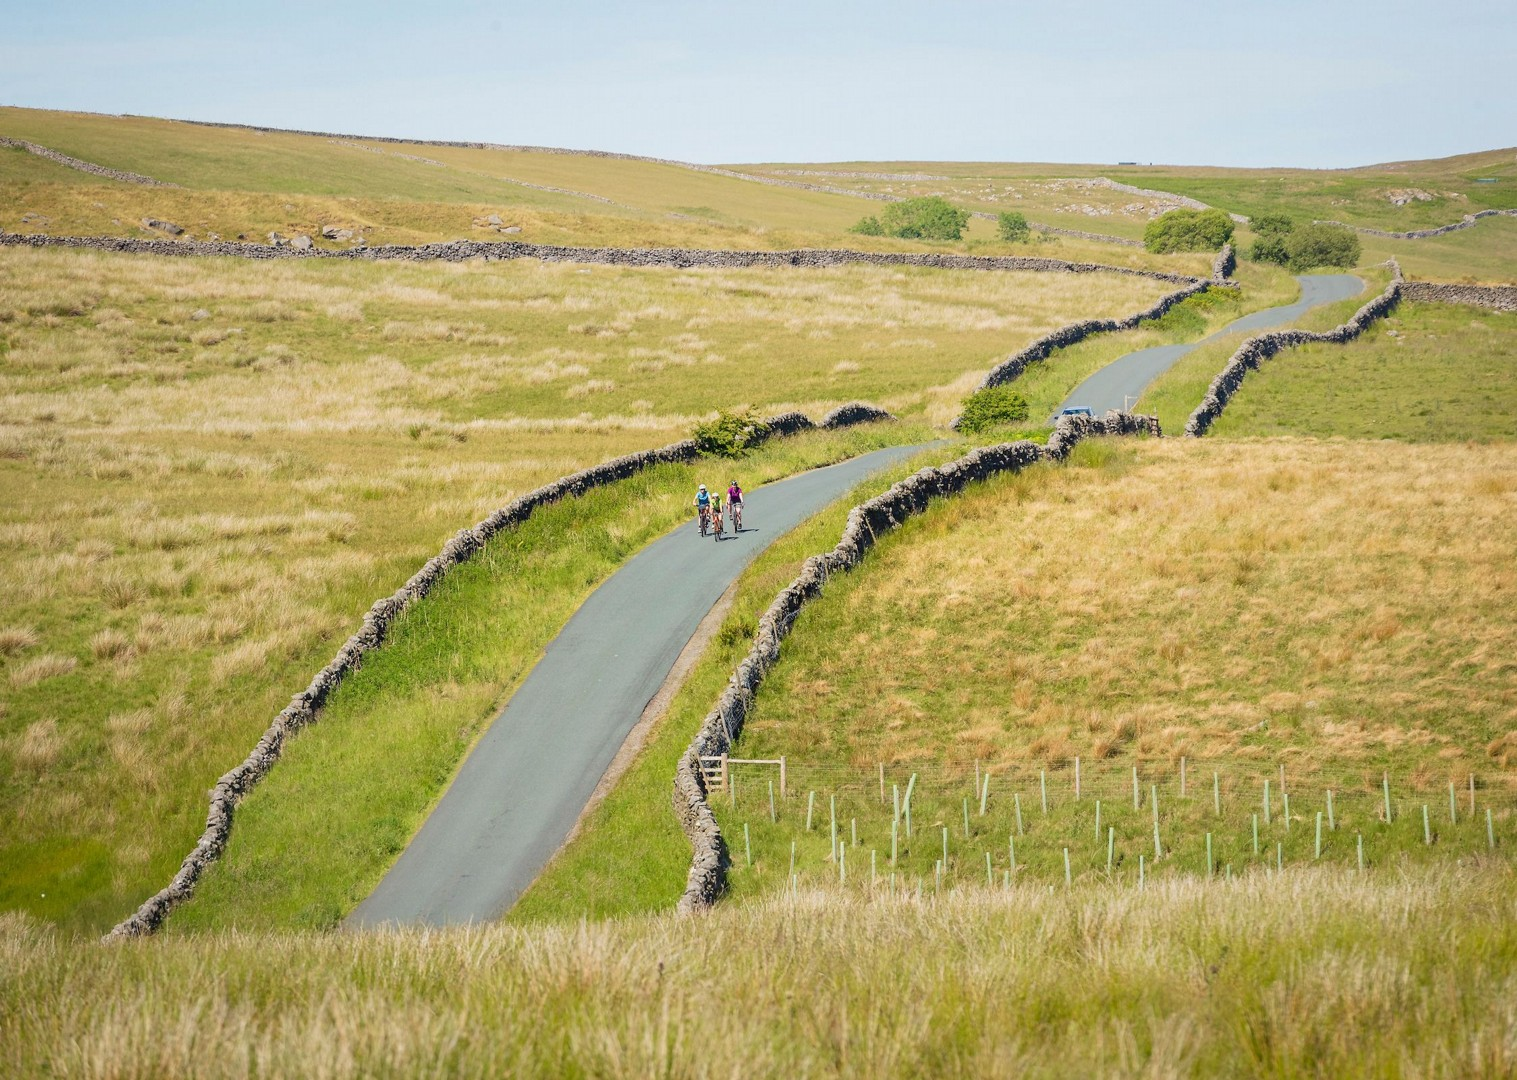 hill-terrain-yorkshire-dales-self-guided-cycling-tour.jpg - UK - Way of the Roses 5 Days Cycling - Self-Guided Leisure Cycling Holiday - Leisure Cycling